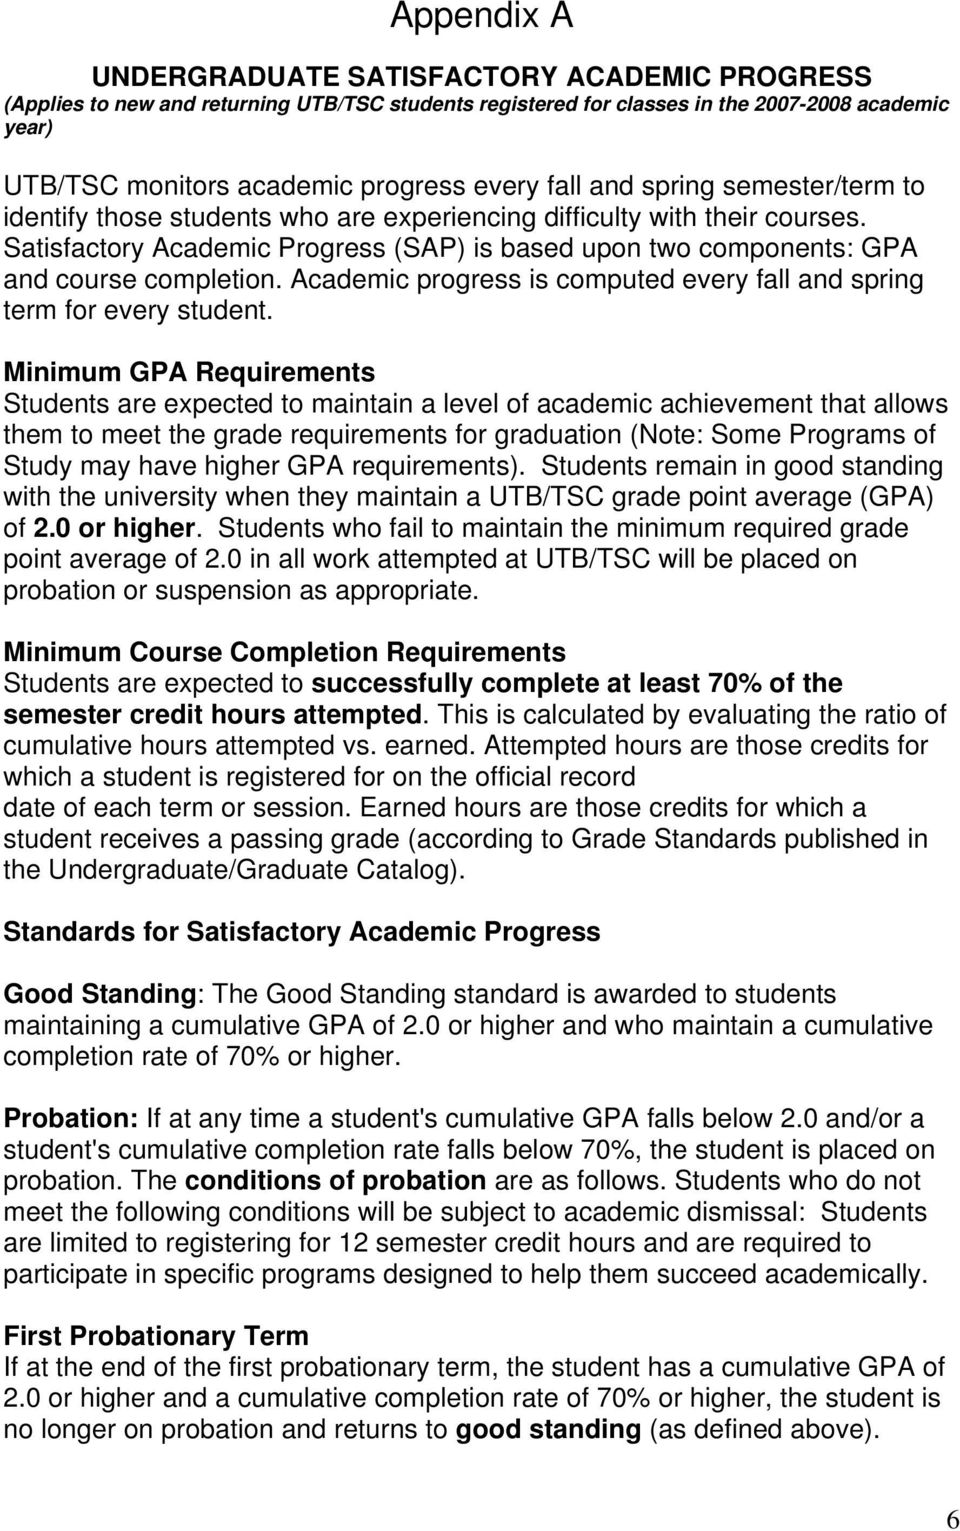 Satisfactory Academic Progress (SAP) is based upon two components: GPA and course completion. Academic progress is computed every fall and spring term for every student.